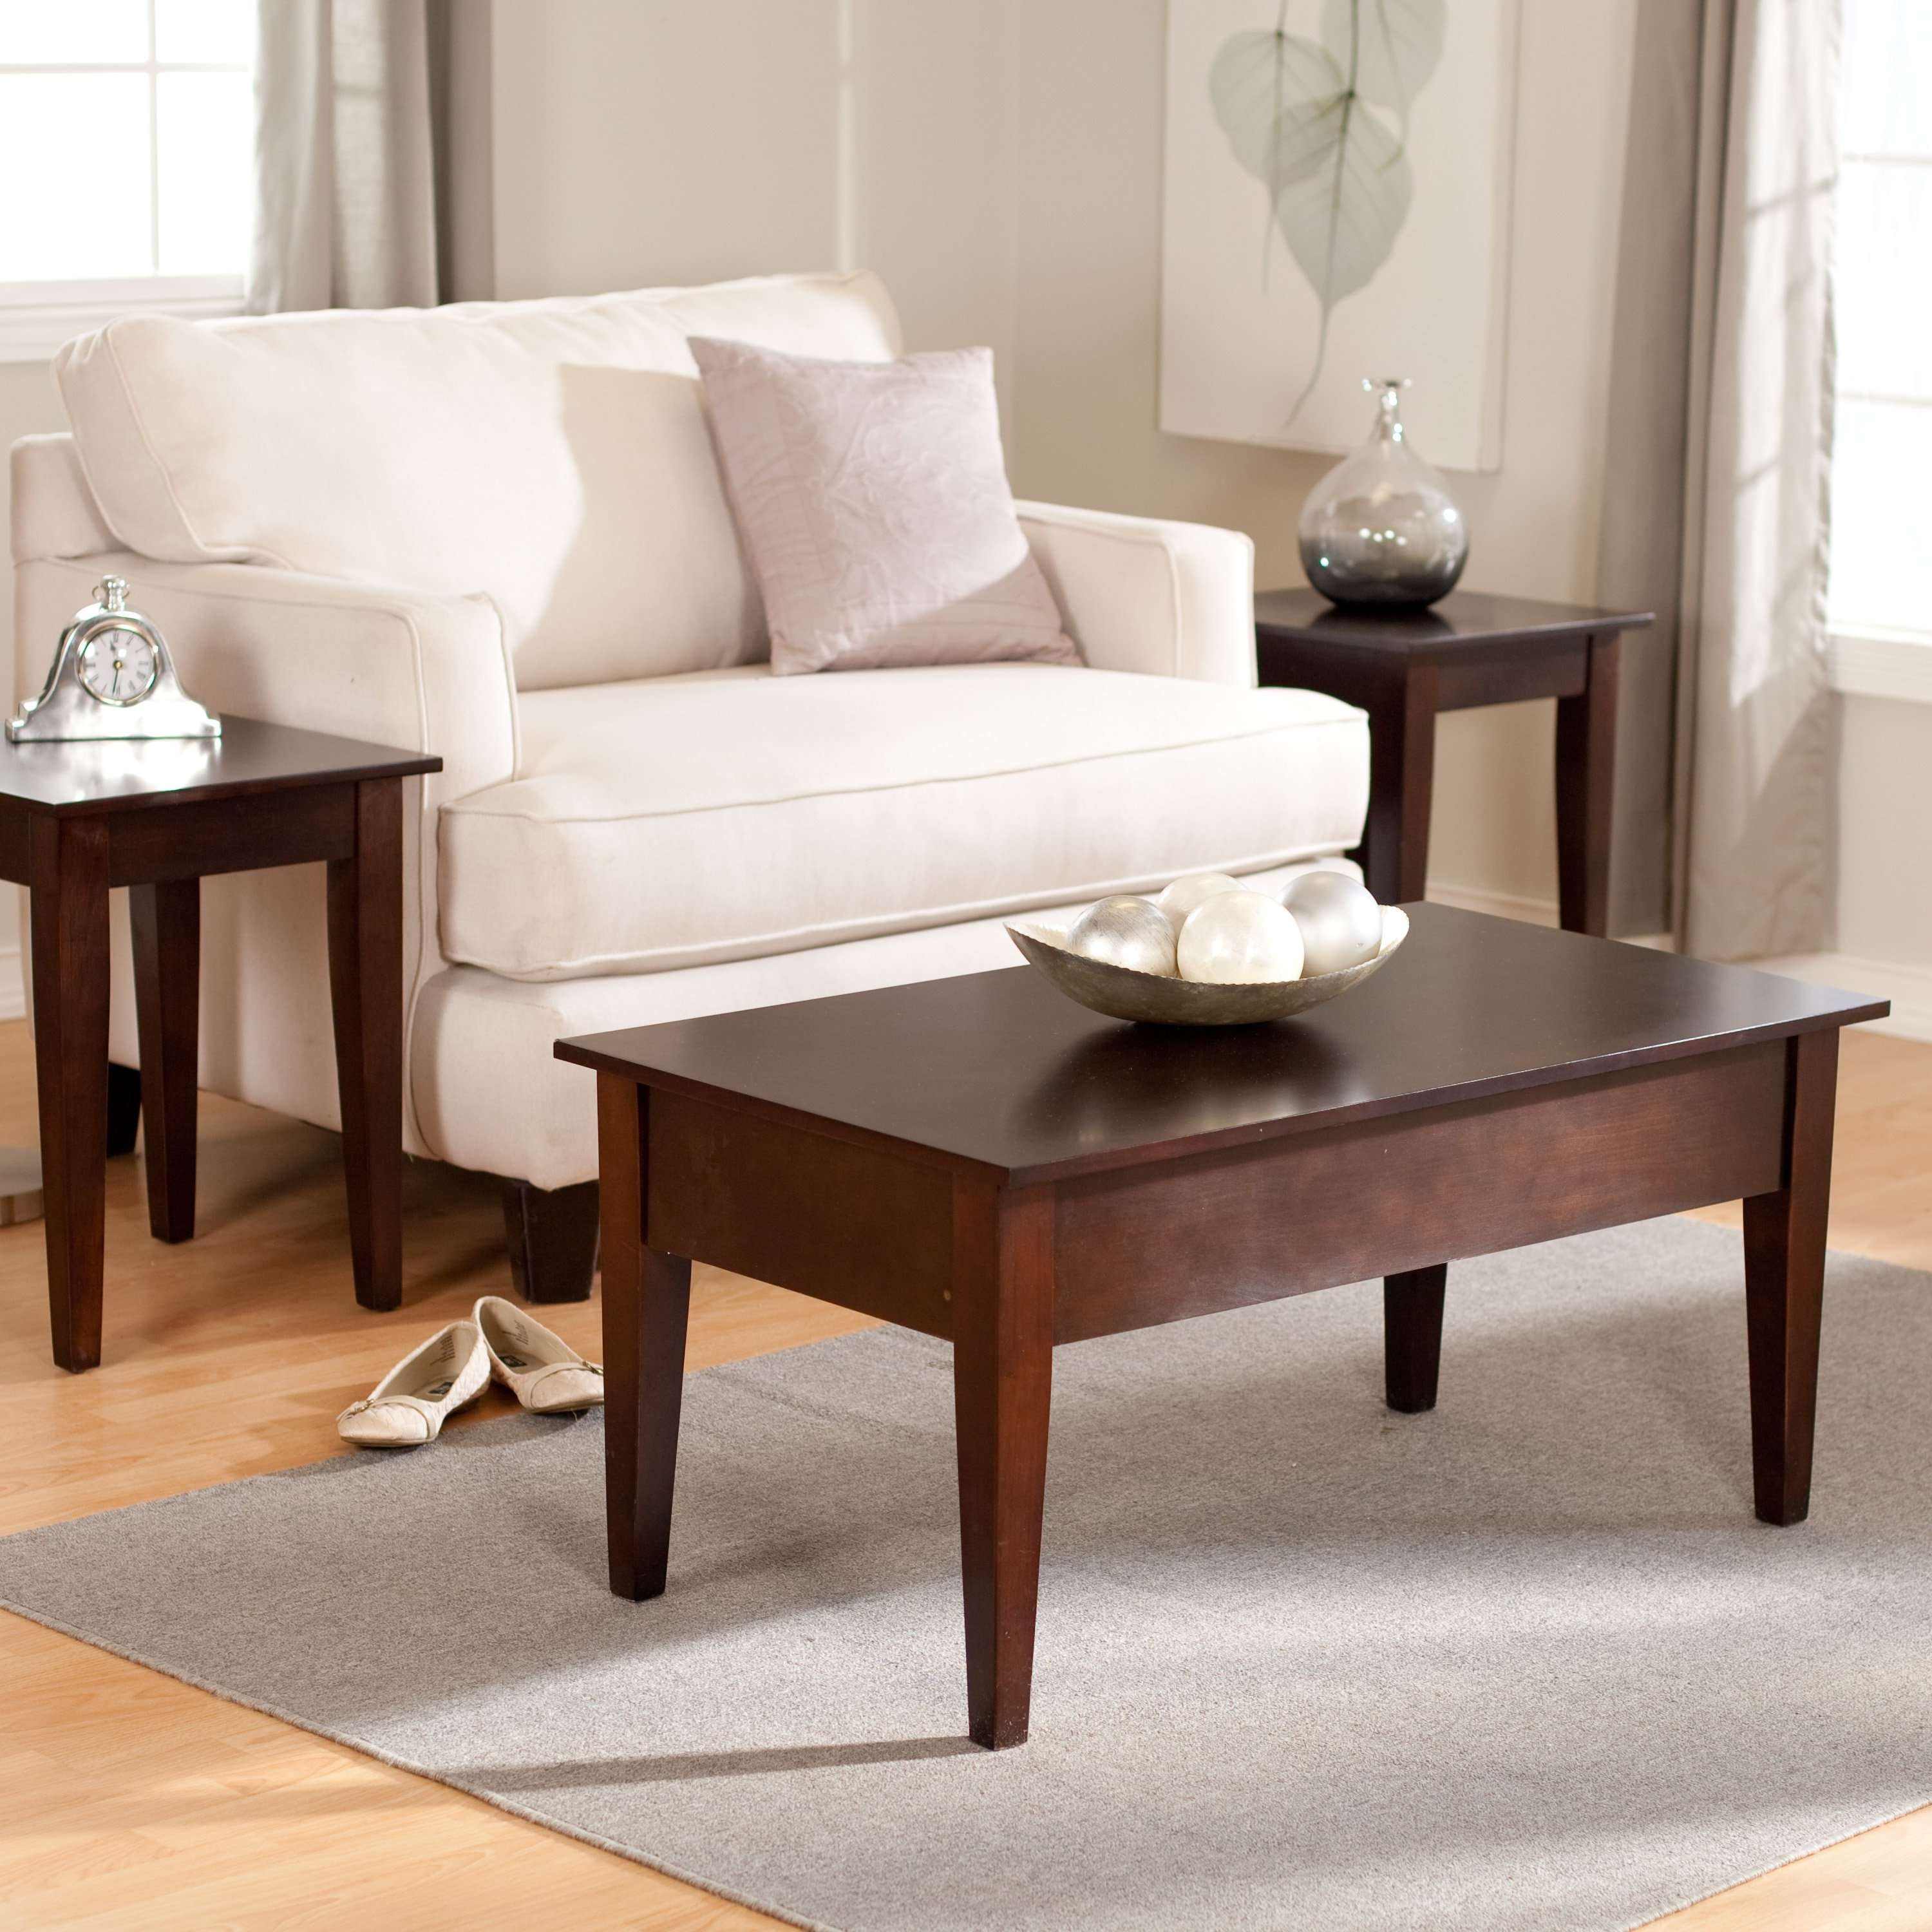 Hayneedle Within Best And Newest Espresso Coffee Tables (View 9 of 20)